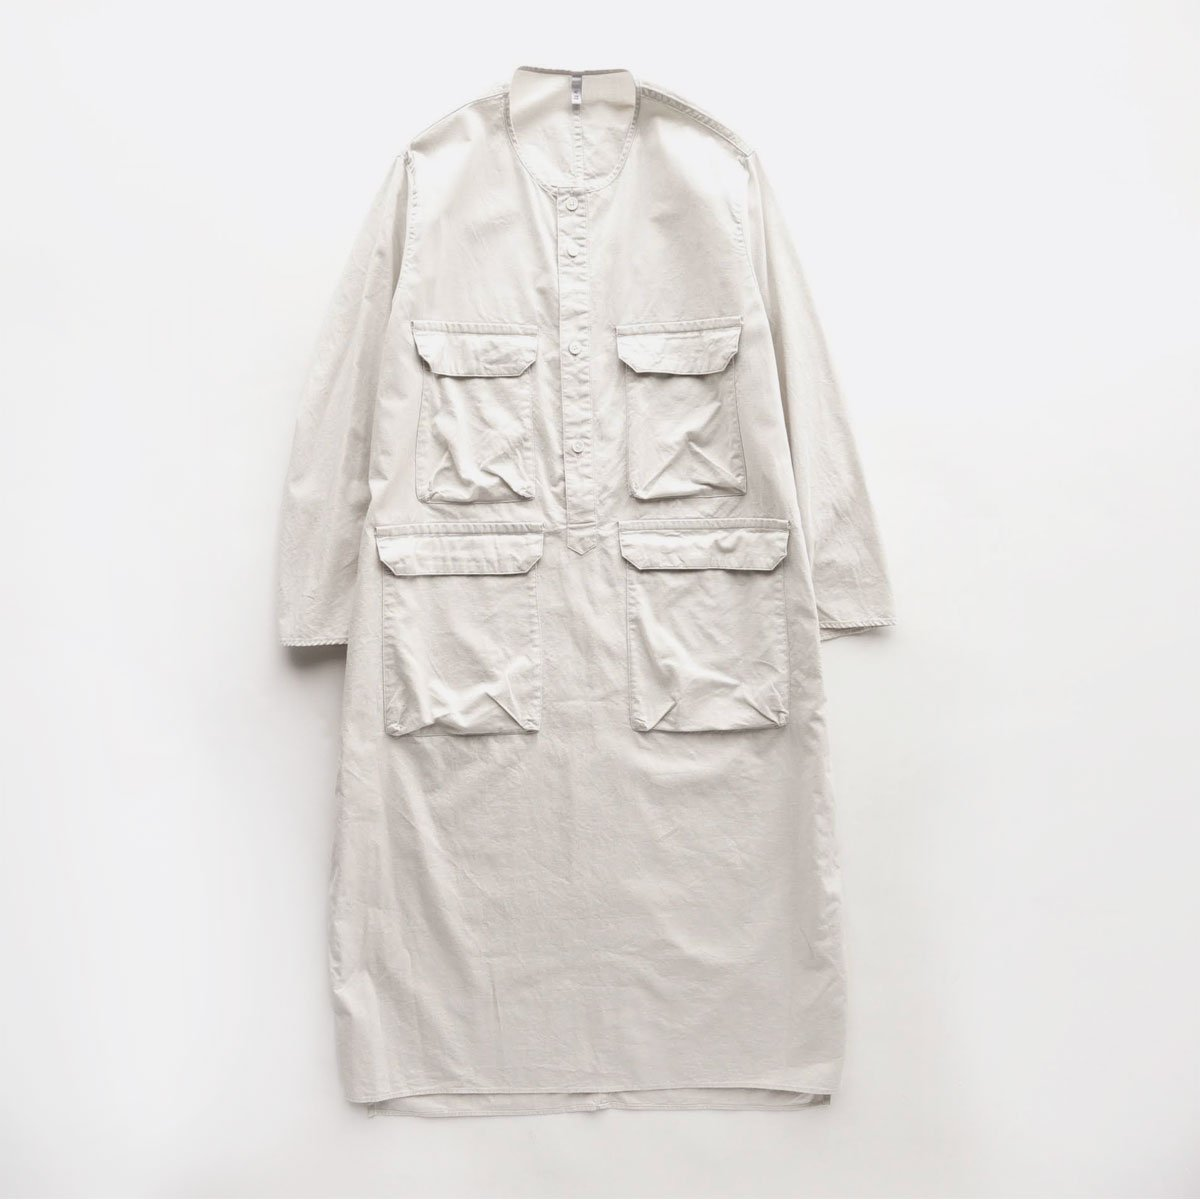 FIRMUM 20s ROUGH COTTON SHEETING PULL OVER  (frosty white)1